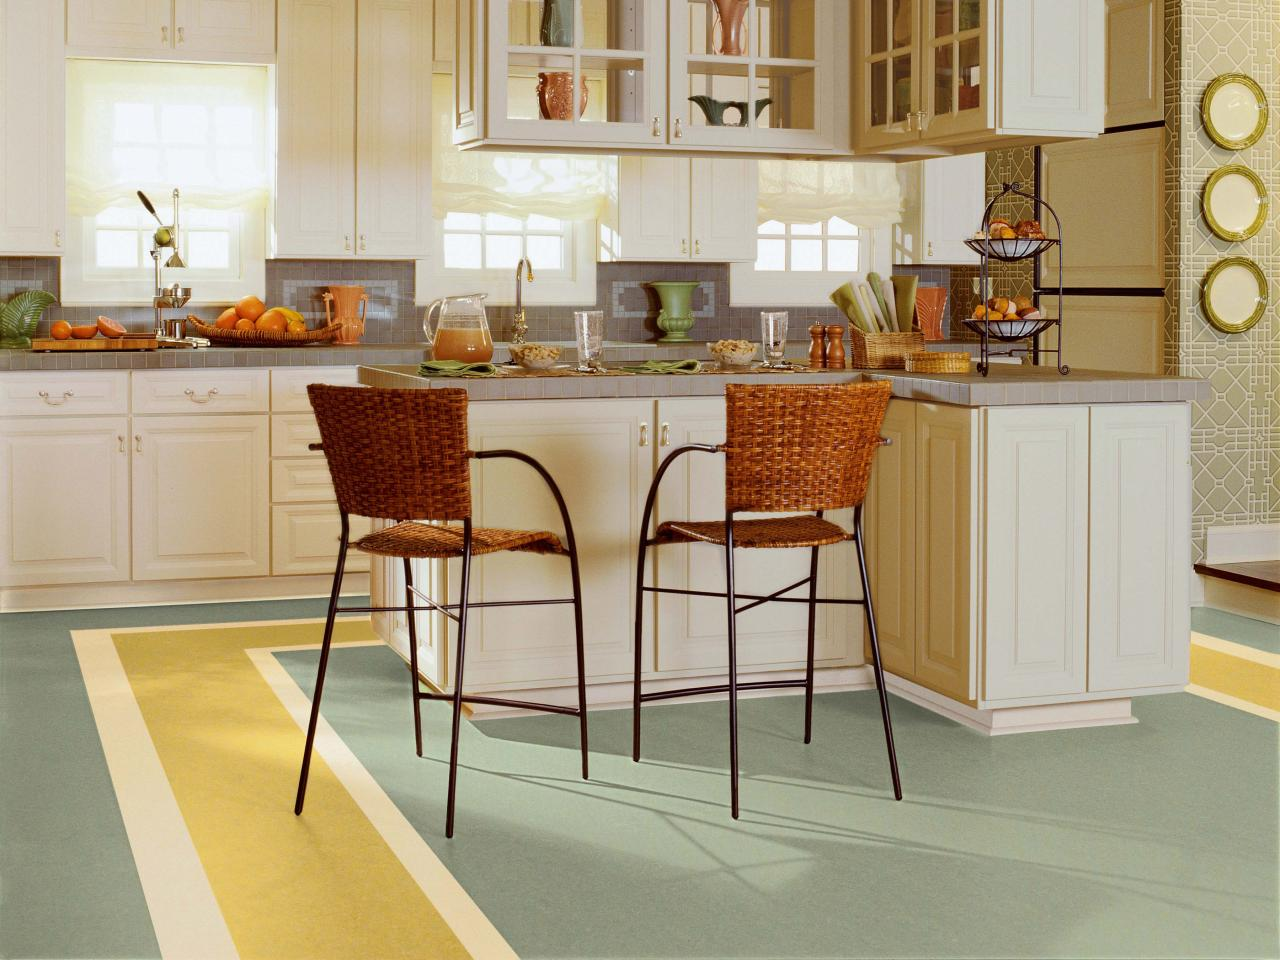 linoleum - Dining Room Flooring Options